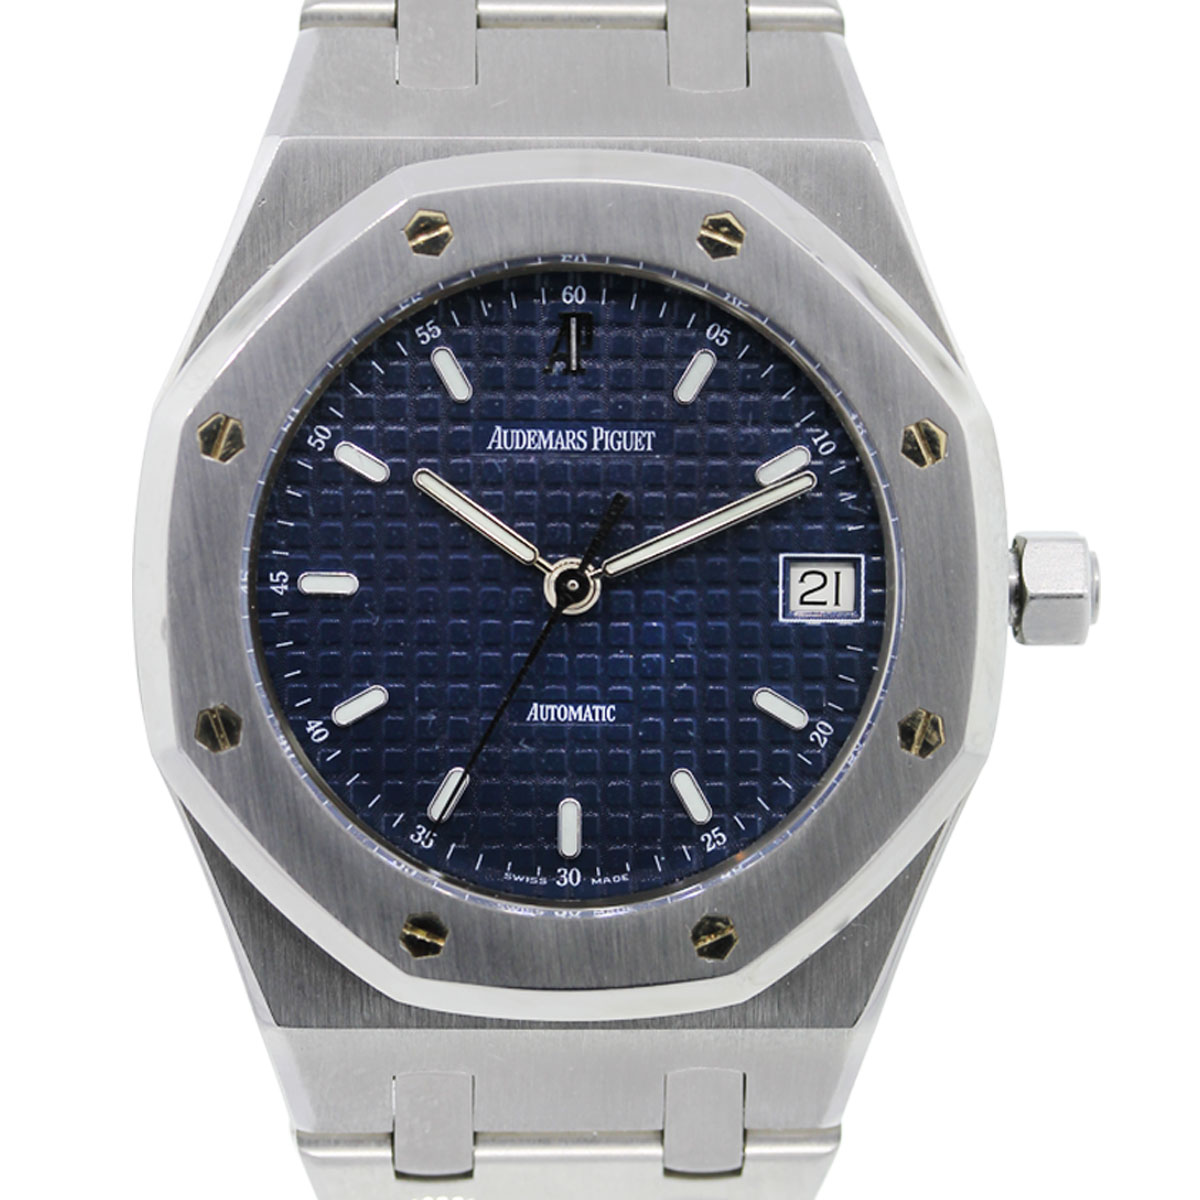 You are viewing this Audemars Piguet Royal Oak 5775 Stainless Steel Watch!